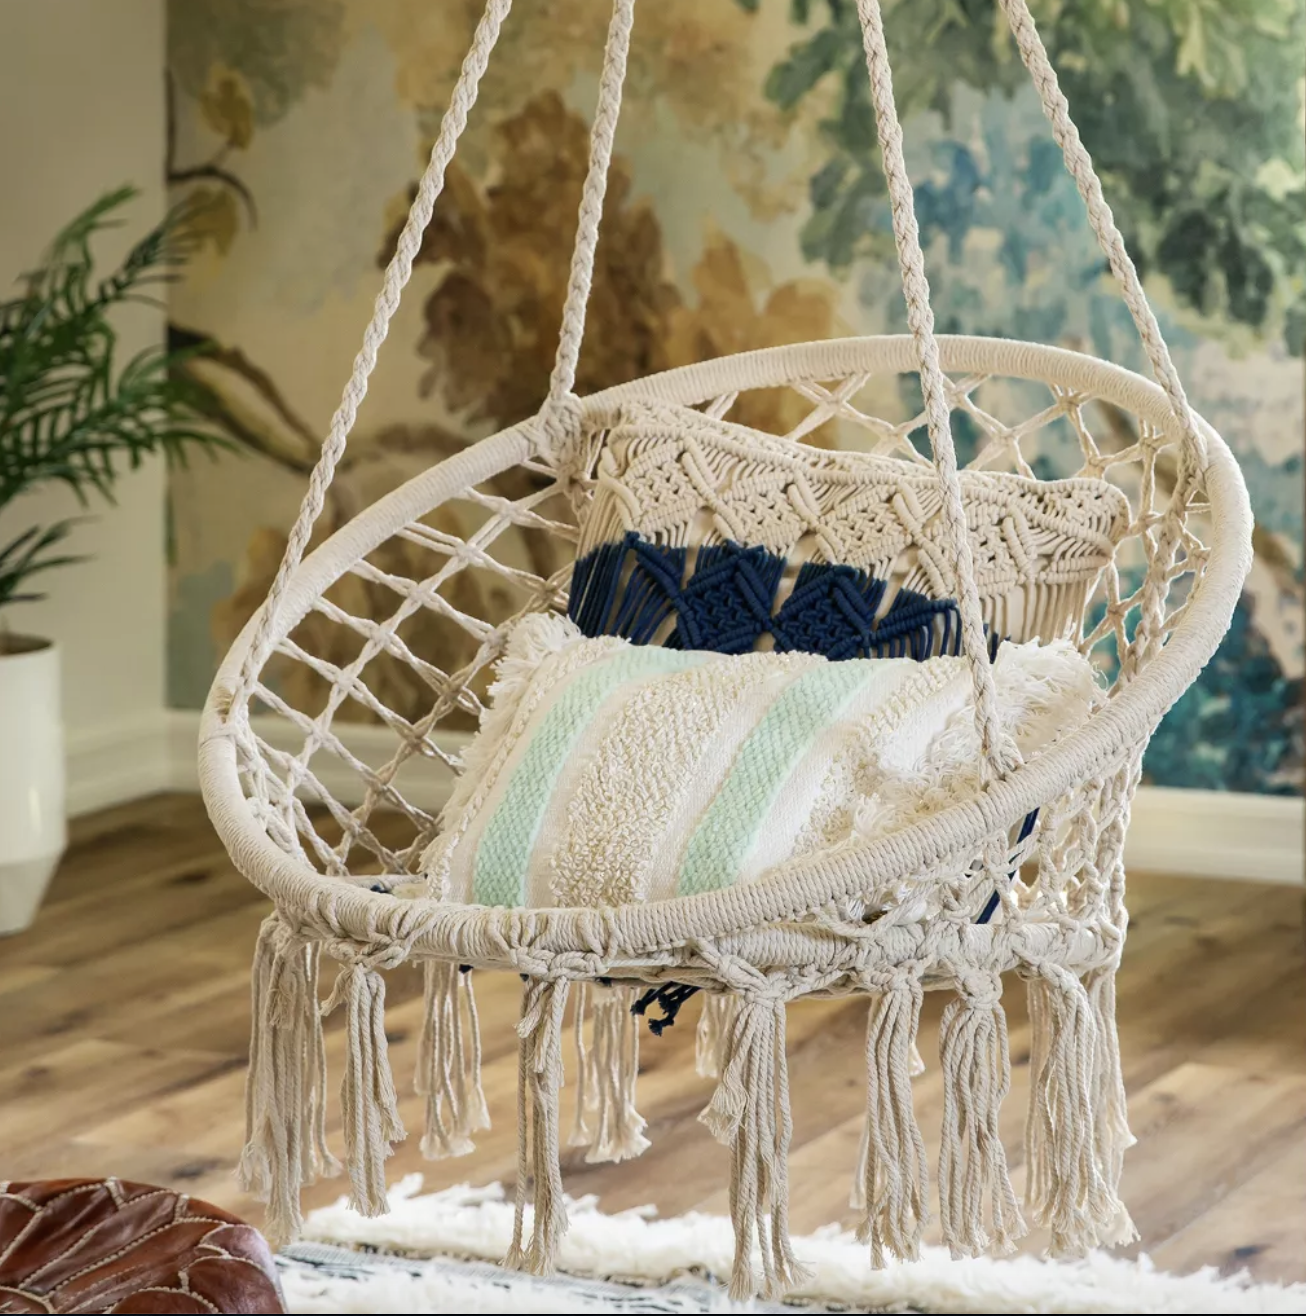 The white woven macrame seat is in a circular shape with a blue throw pillow